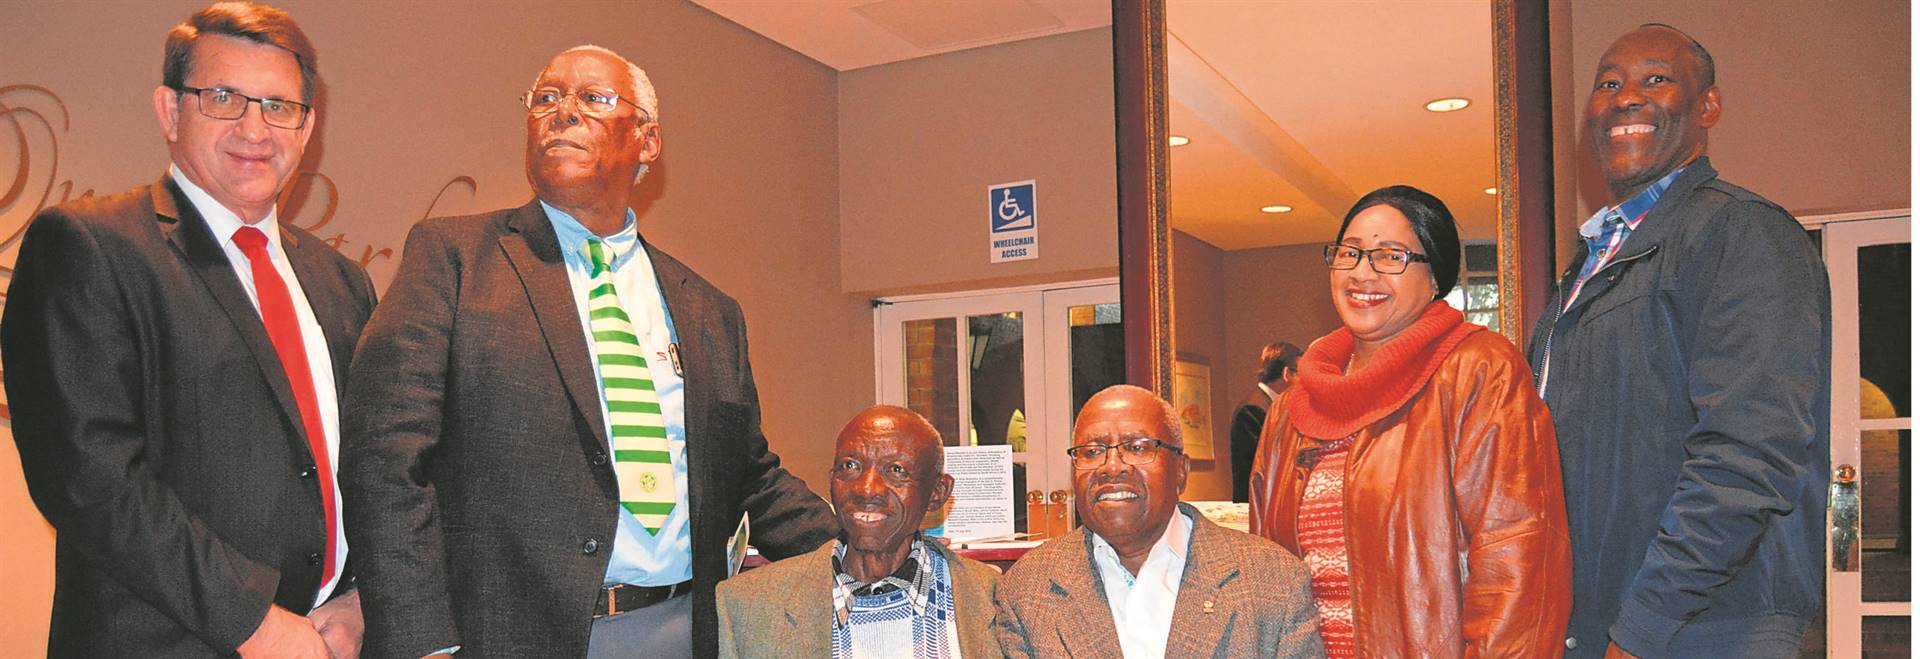 "The Central University of Technology, Free State, hosted the official launch of two books, Resilient Ntate Molemela and Dance Siwelele, dedicated to Dr. Rantlai Molemela and Bloemfontein Celtic supporters and the club, respectively. Dignitaries at the function held in Bloemfontein on 15 July are, from the left, Prof. Henk de Jager (vice-chancellor and principal of the CUT), Mike ""The Puma"" Litsili (former Celtic player), Victor Mahatanya (co-founding director of Celtic), Molefi Mika (author), Catherine Mathobisa (wife to the late Norman Mathobisa, co-founding director of Celtic) and Sello Molemela (son of the late Dr Petrus Molemela). Photo: Supplied"